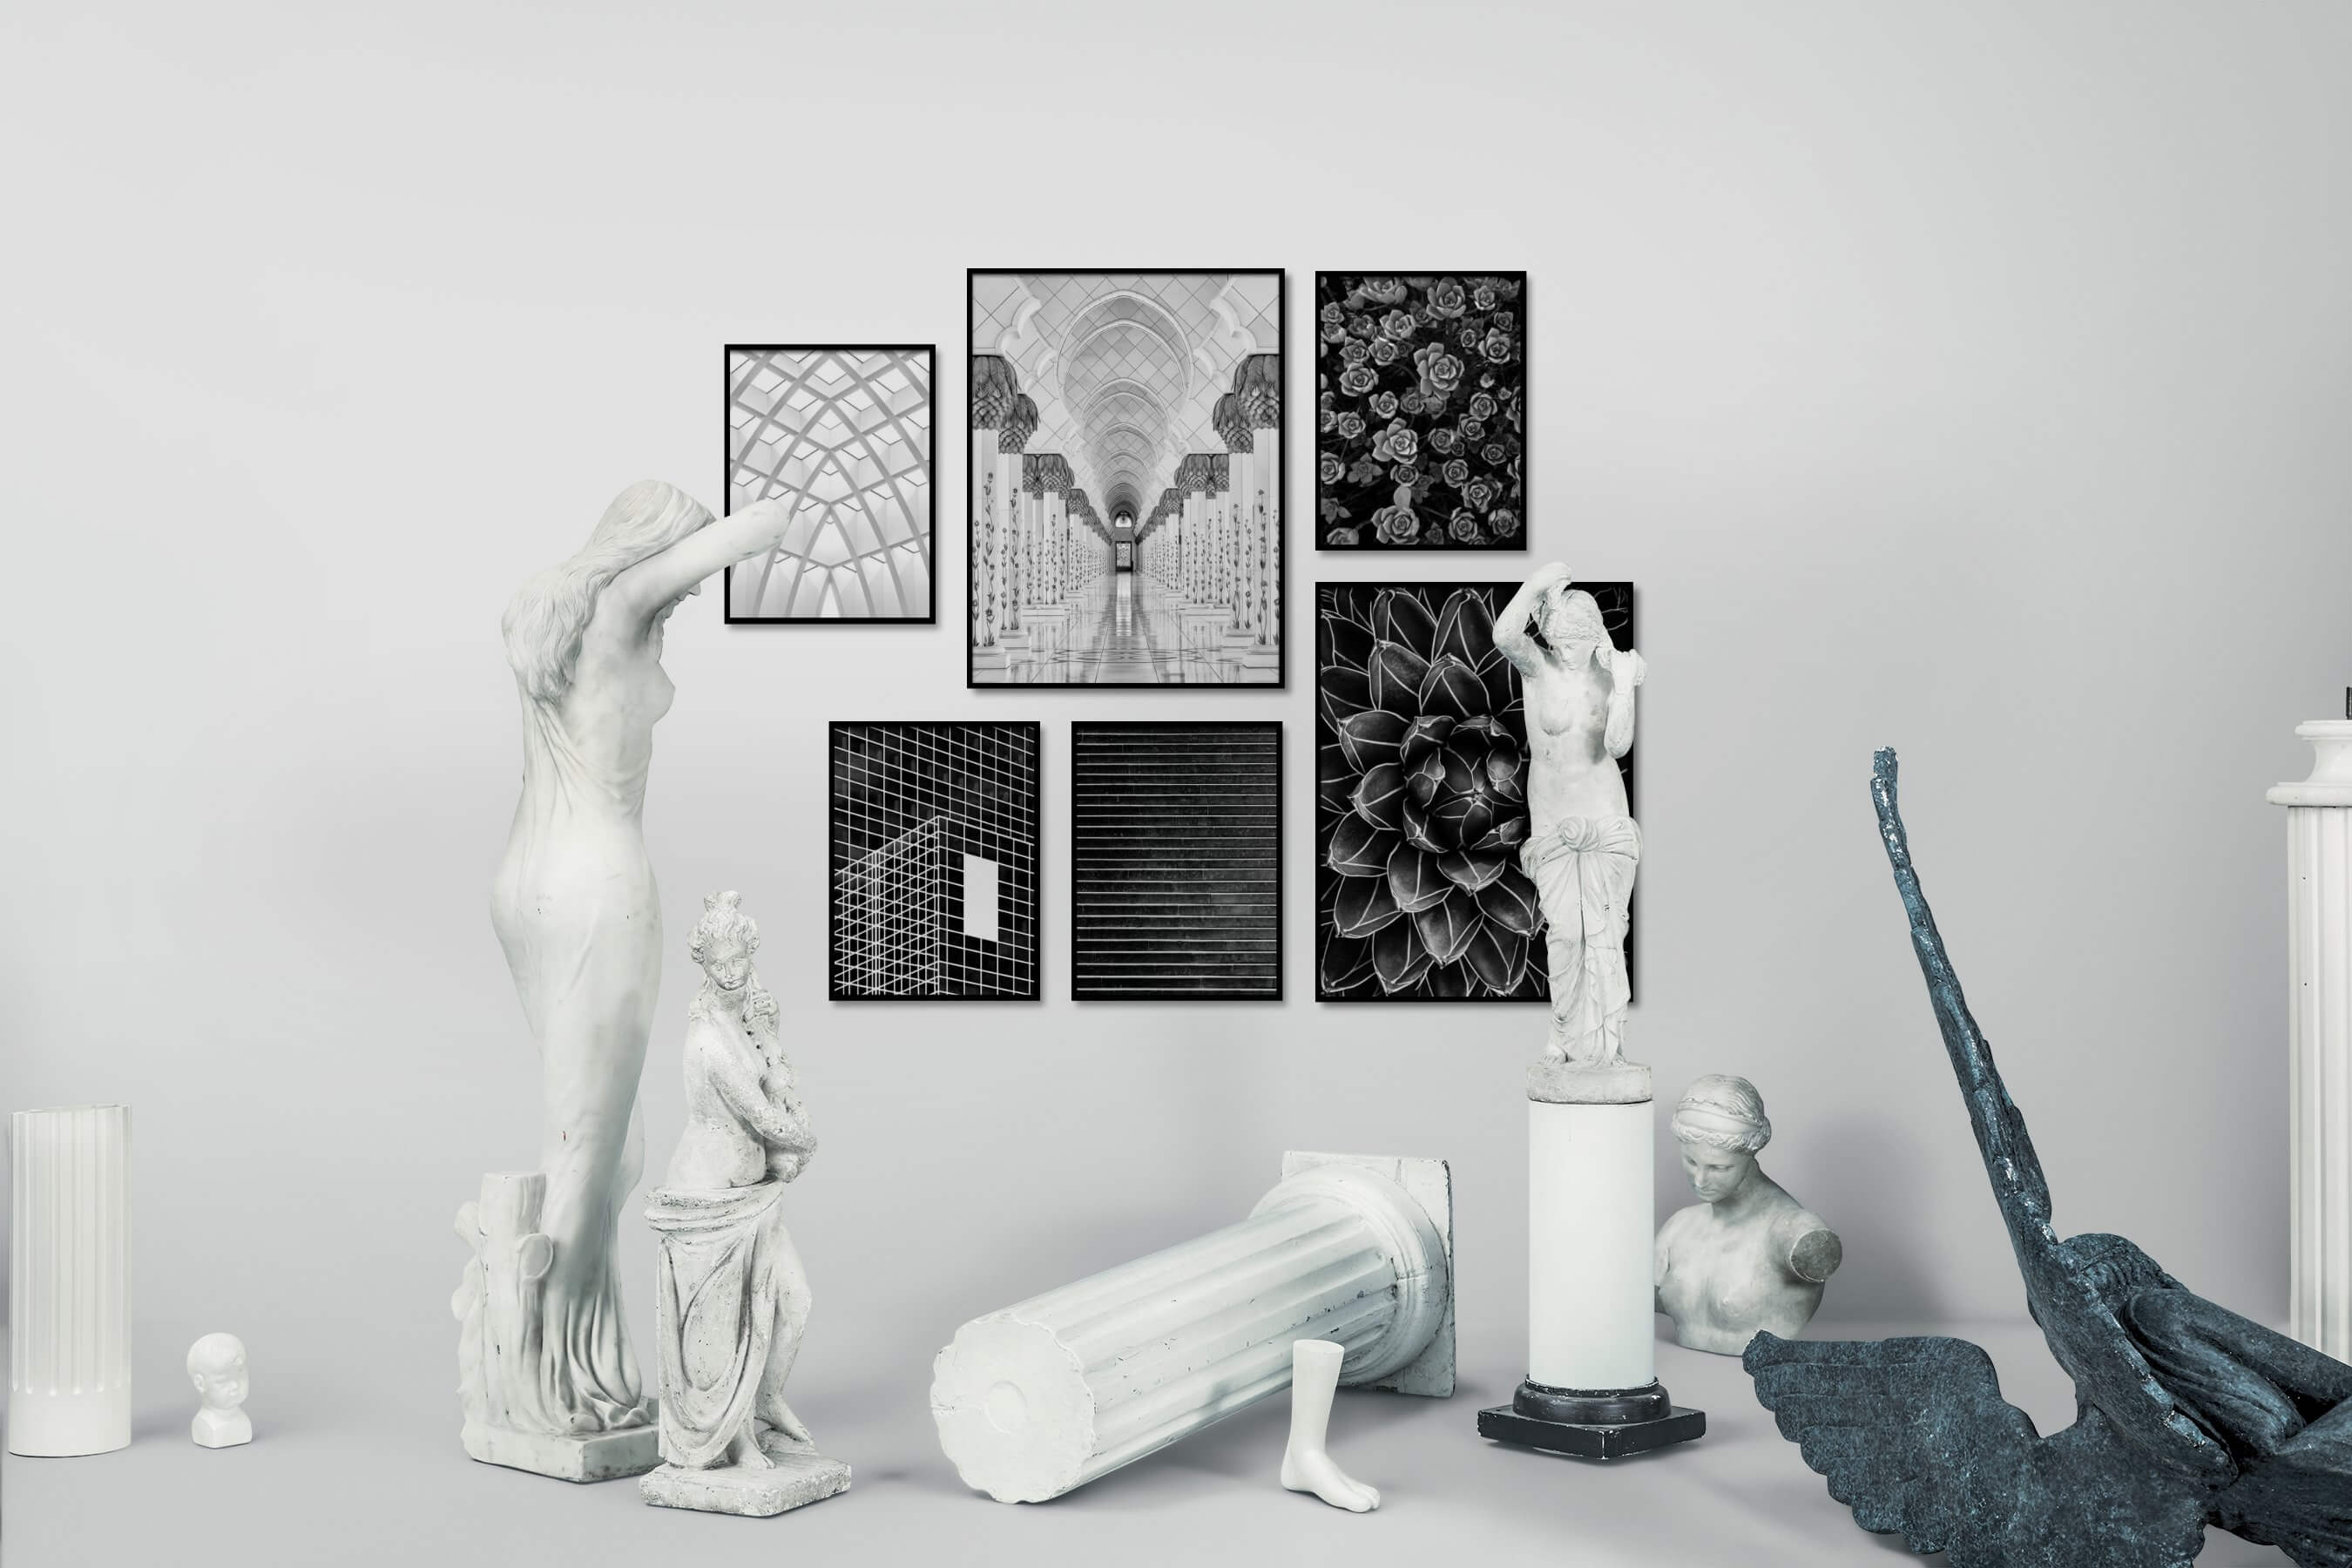 Gallery wall idea with six framed pictures arranged on a wall depicting Black & White, For the Maximalist, City Life, For the Moderate, Flowers & Plants, and Dark Tones